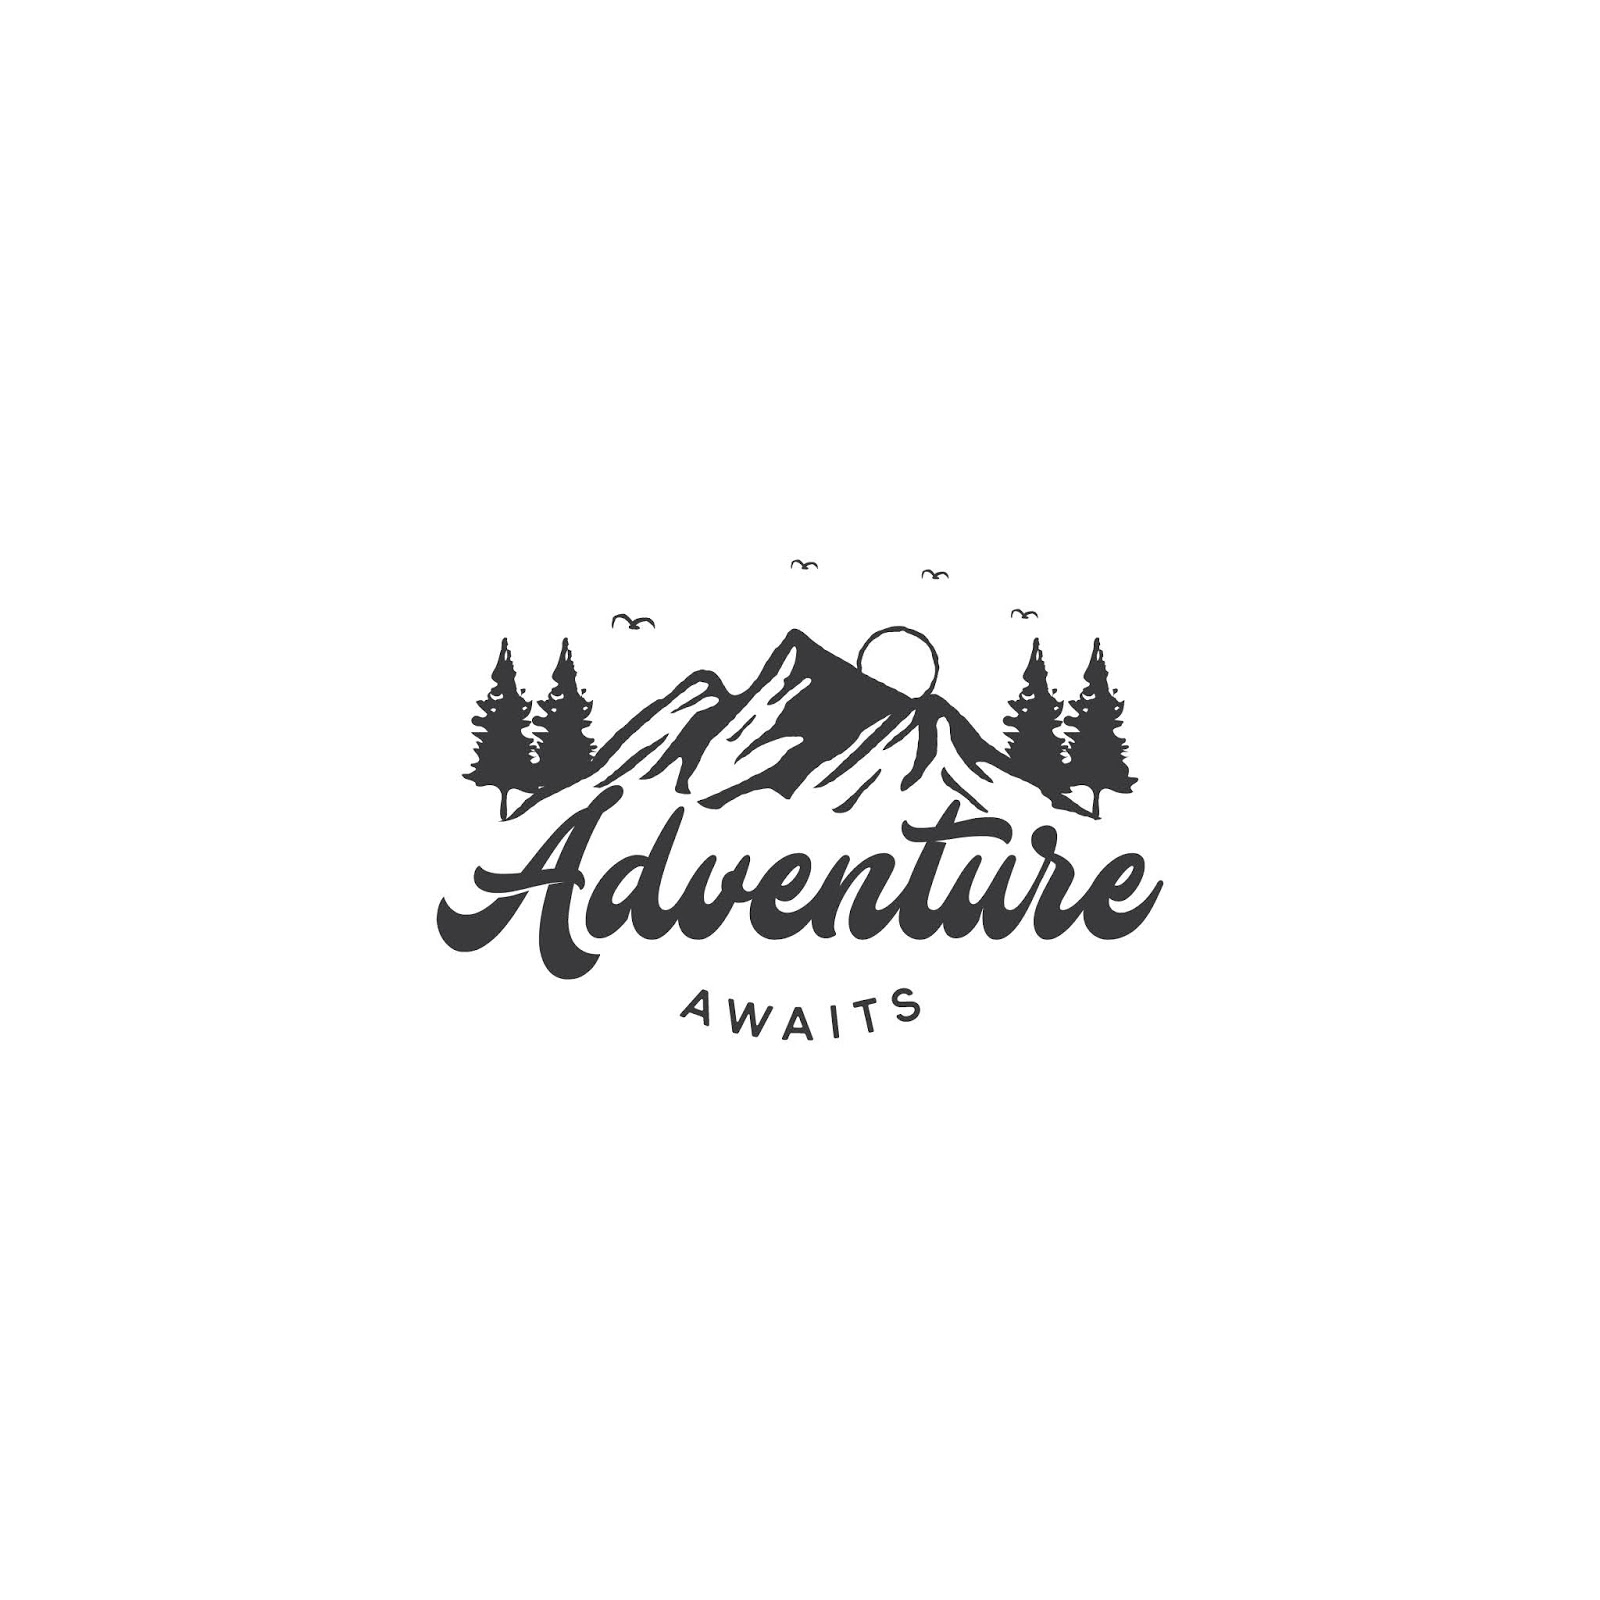 Mountain Logo Adventure Outdoor Logo Design Free Download Vector CDR, AI, EPS and PNG Formats